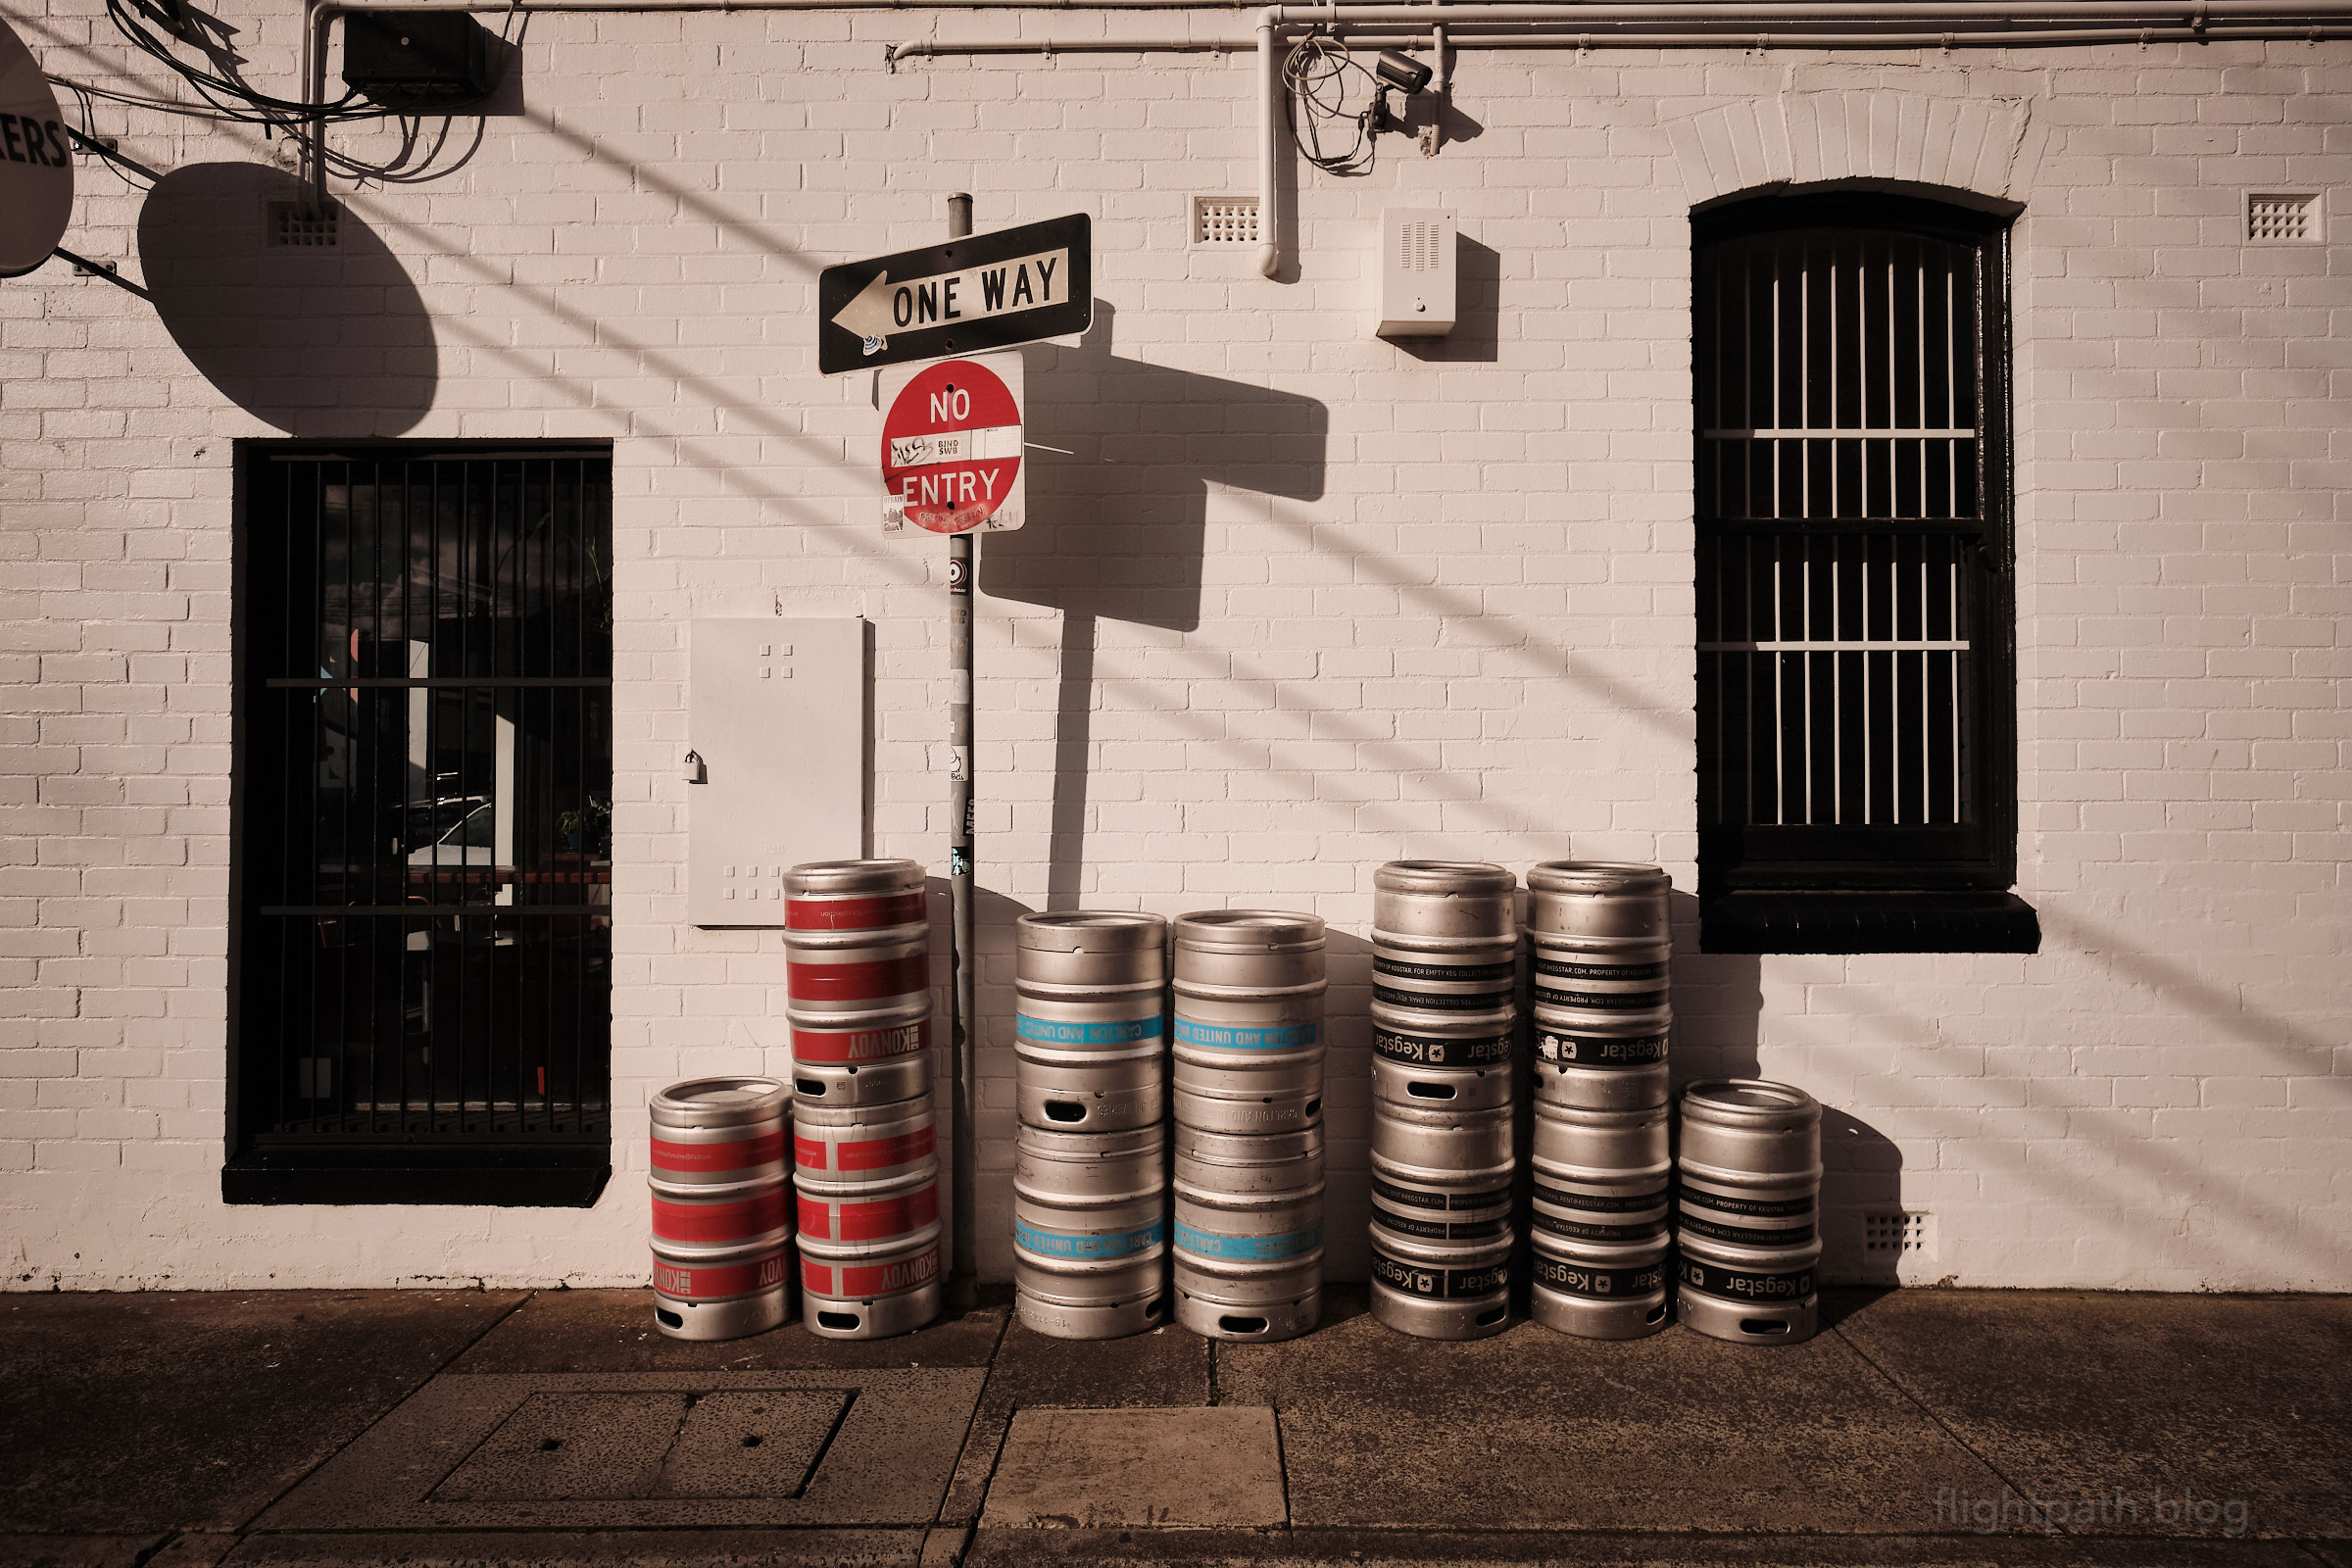 """Stacks of empty beer kegs sit on the footpath beside a pub. A street sign reads """"ONE WAY"""" and """"NO ENTRY"""". There is a sticker on the sign with the faint text """"DTRAIN""""."""